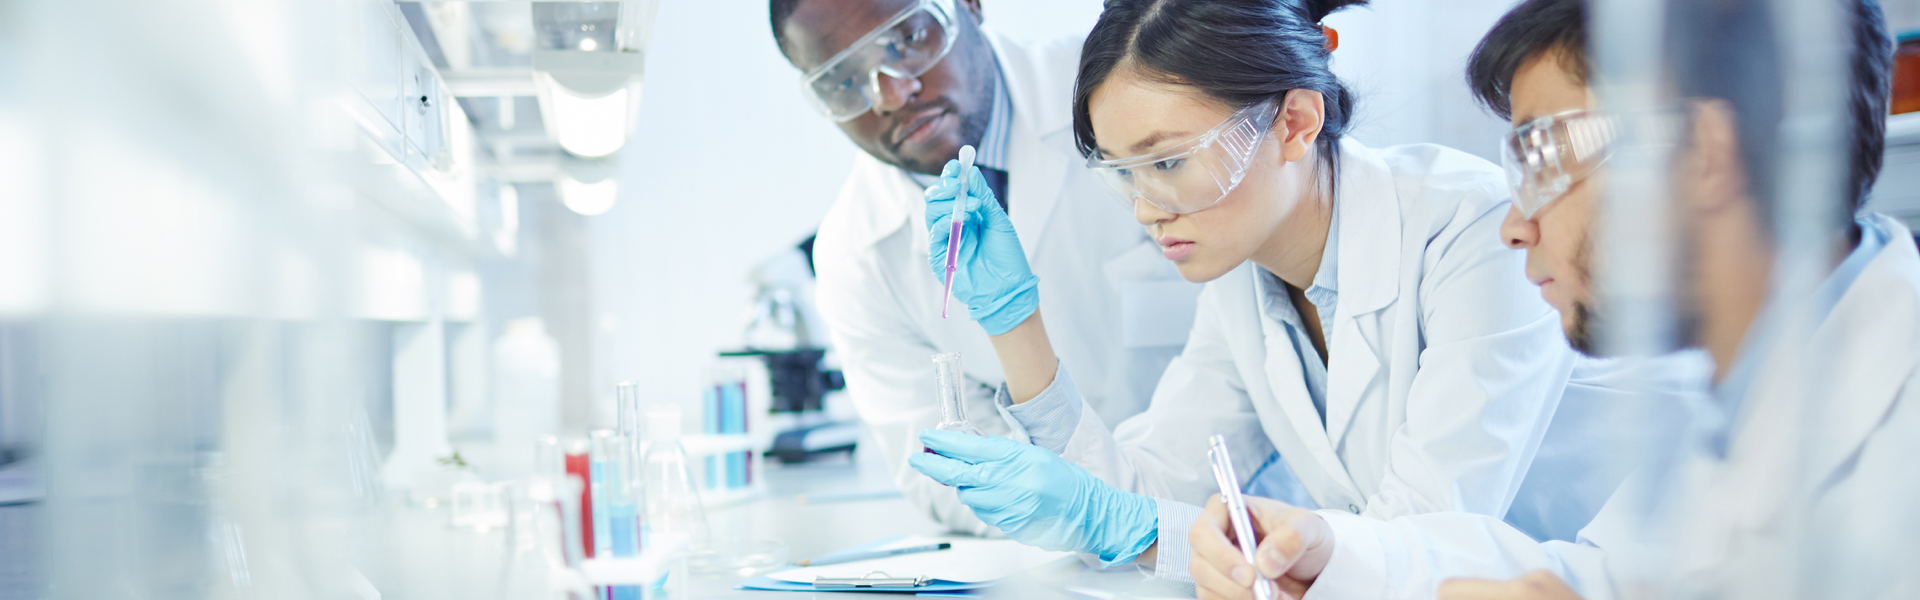 [photo] Scientists in lab setting